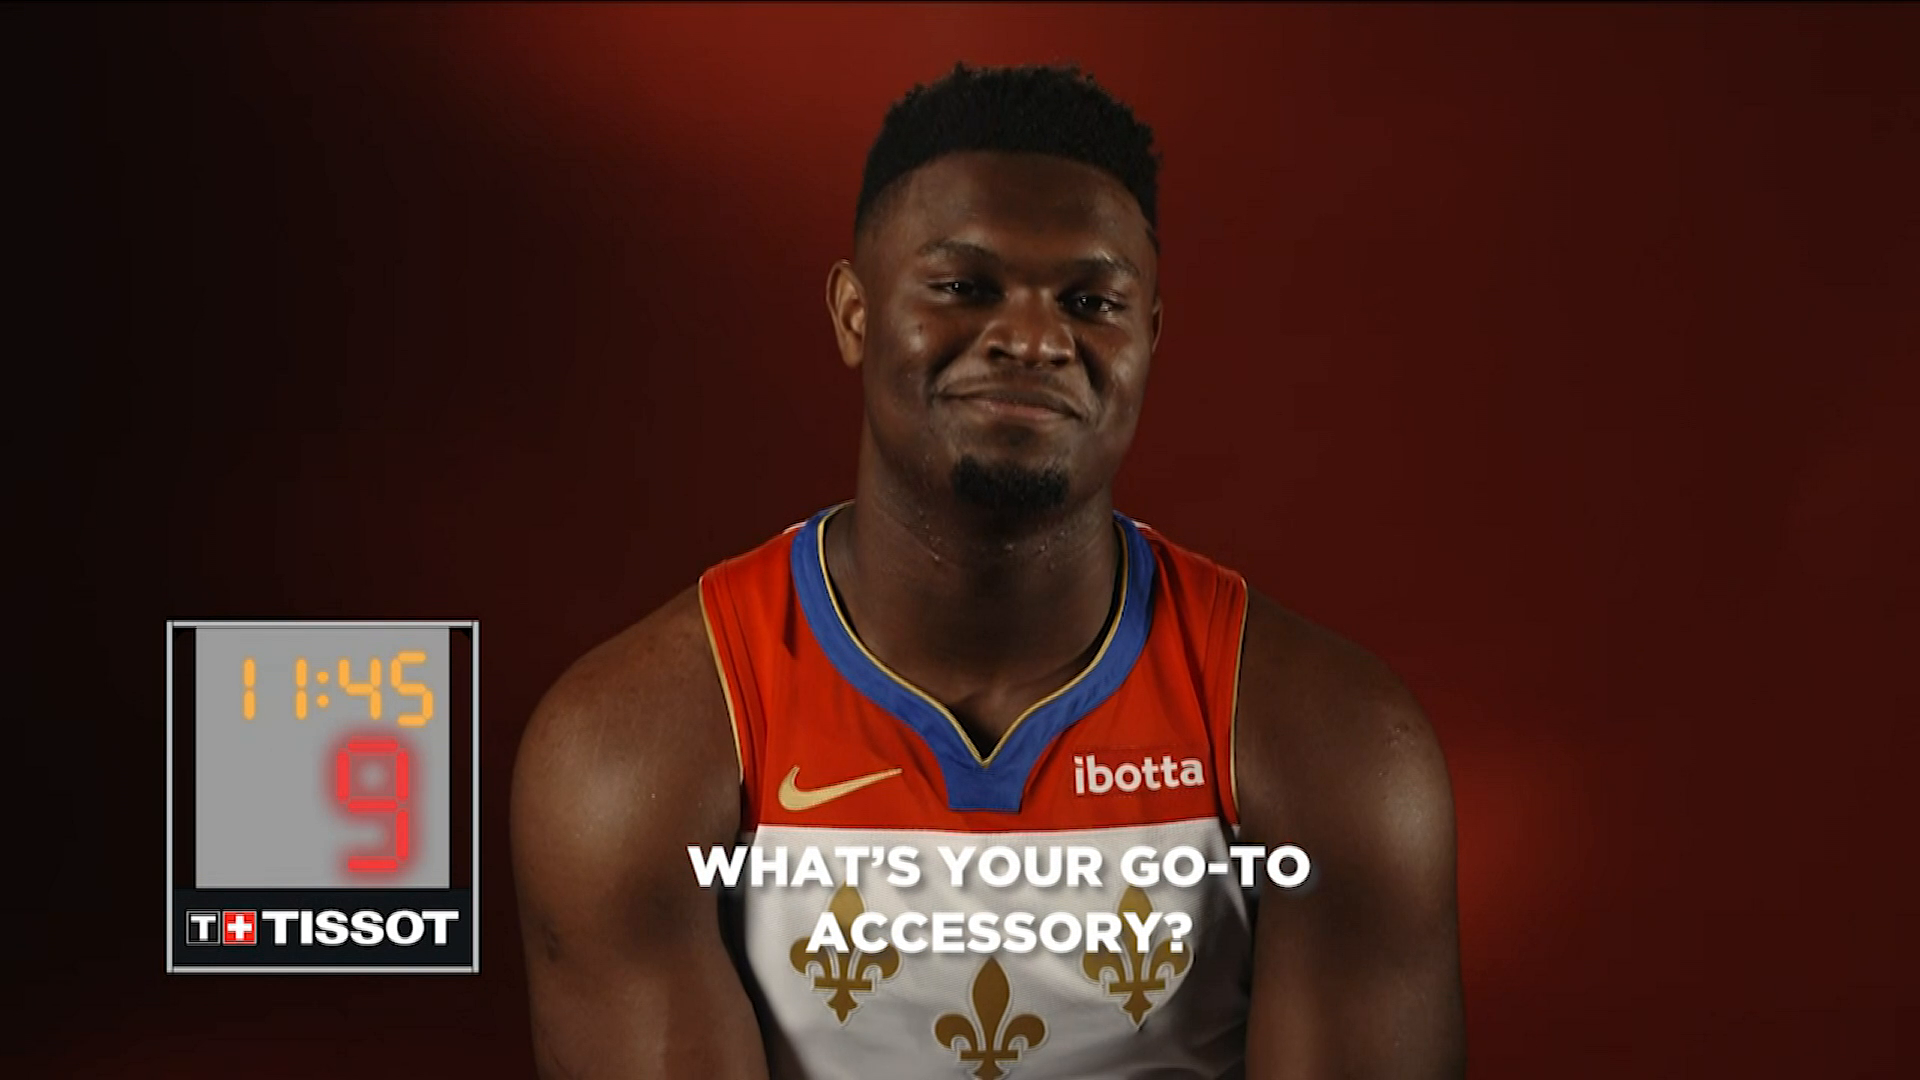 24 Seconds with Zion Williamson presented by Tissot